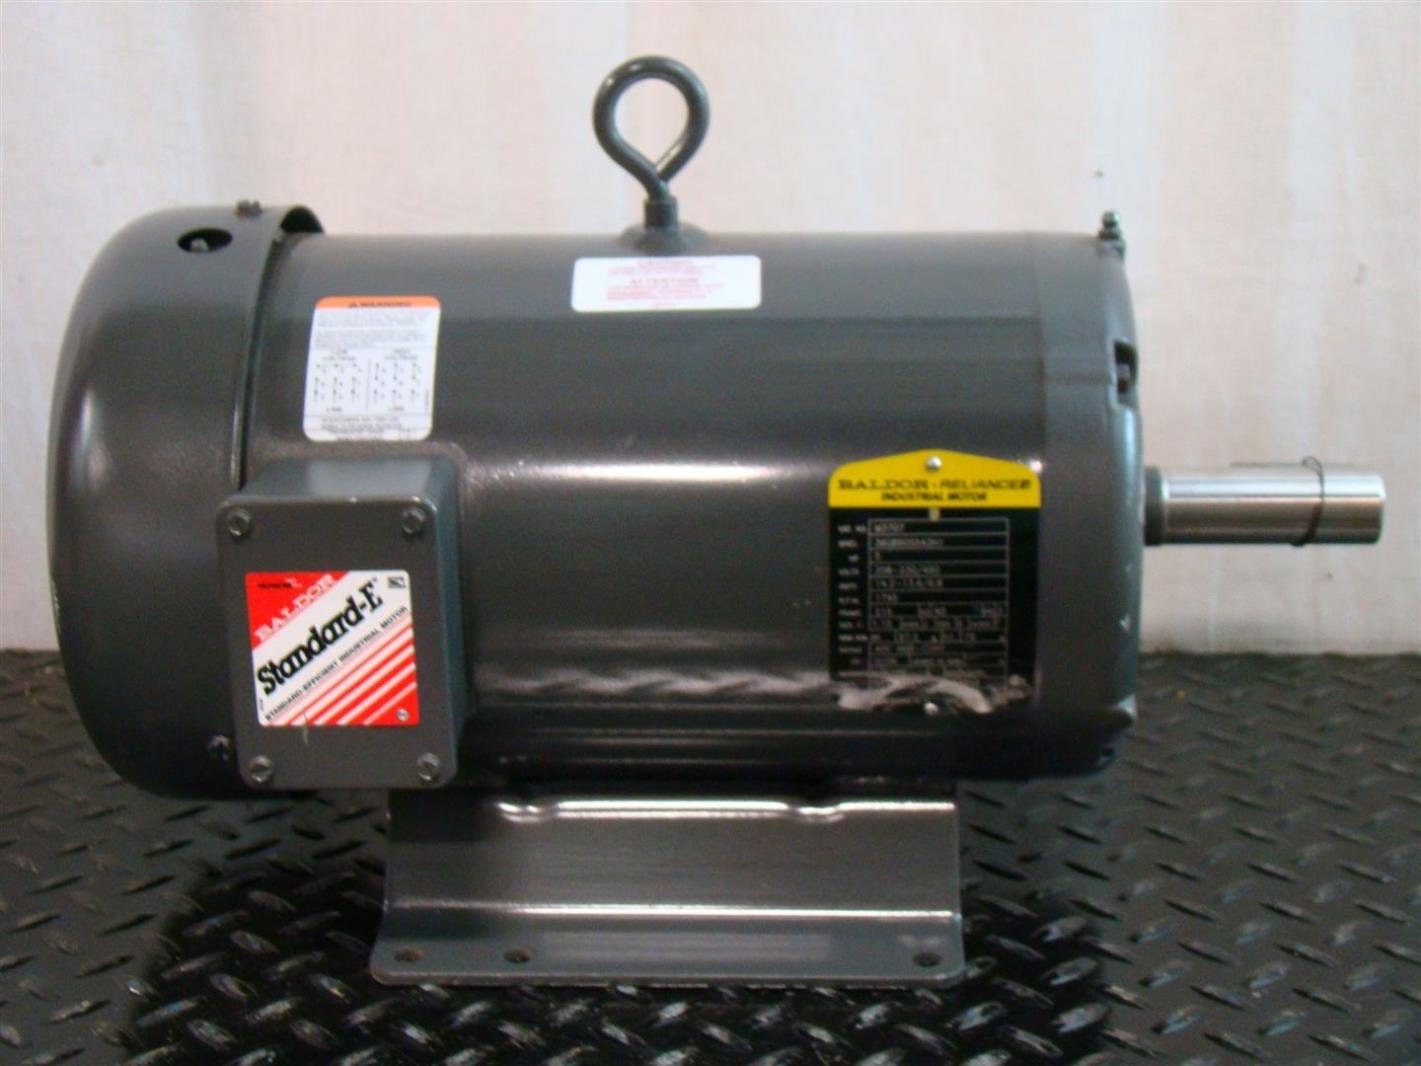 Baldor reliancer industrial motor 5hp ph3 1745rpm 230 460v for Baldor industrial motor parts